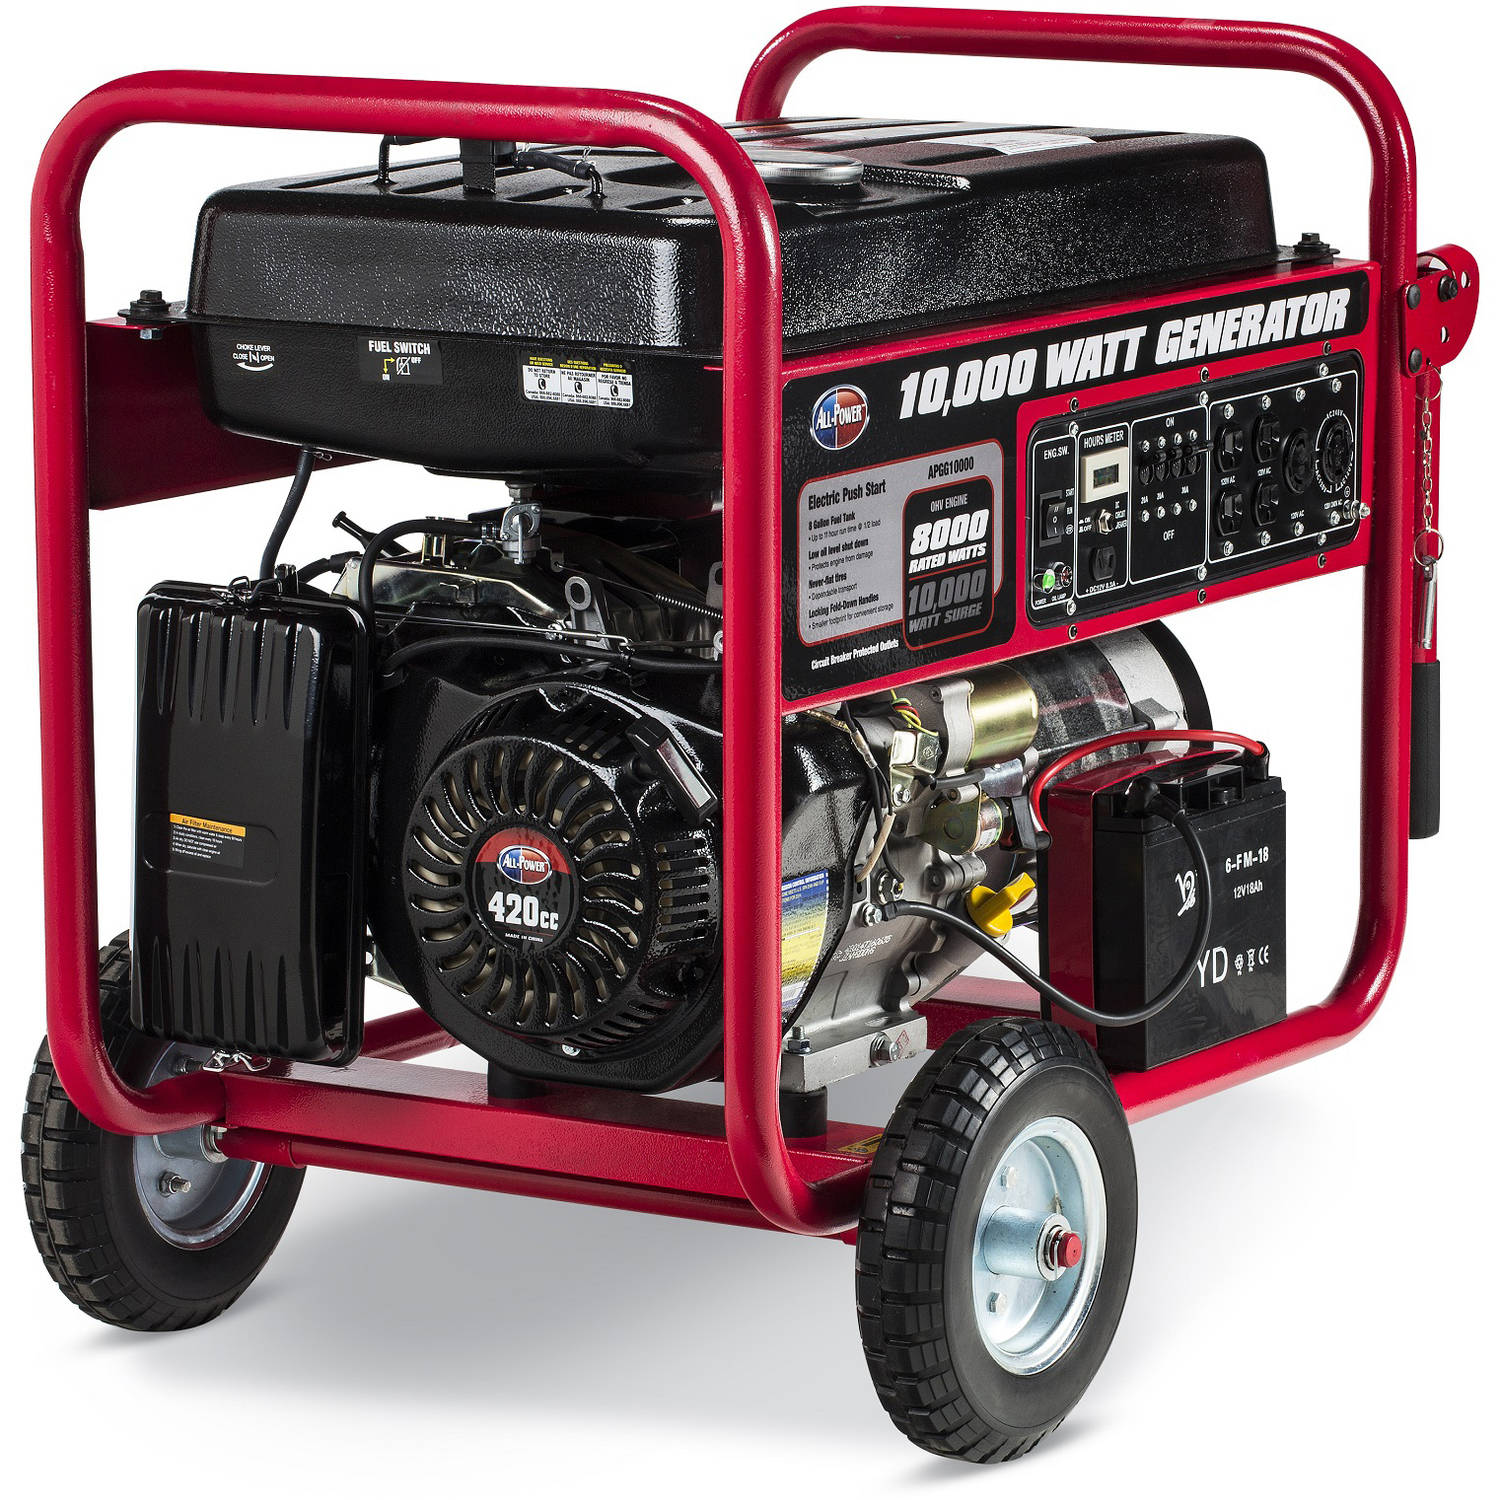 Allpower 10 000W Portable Generator with Electric Start APGG